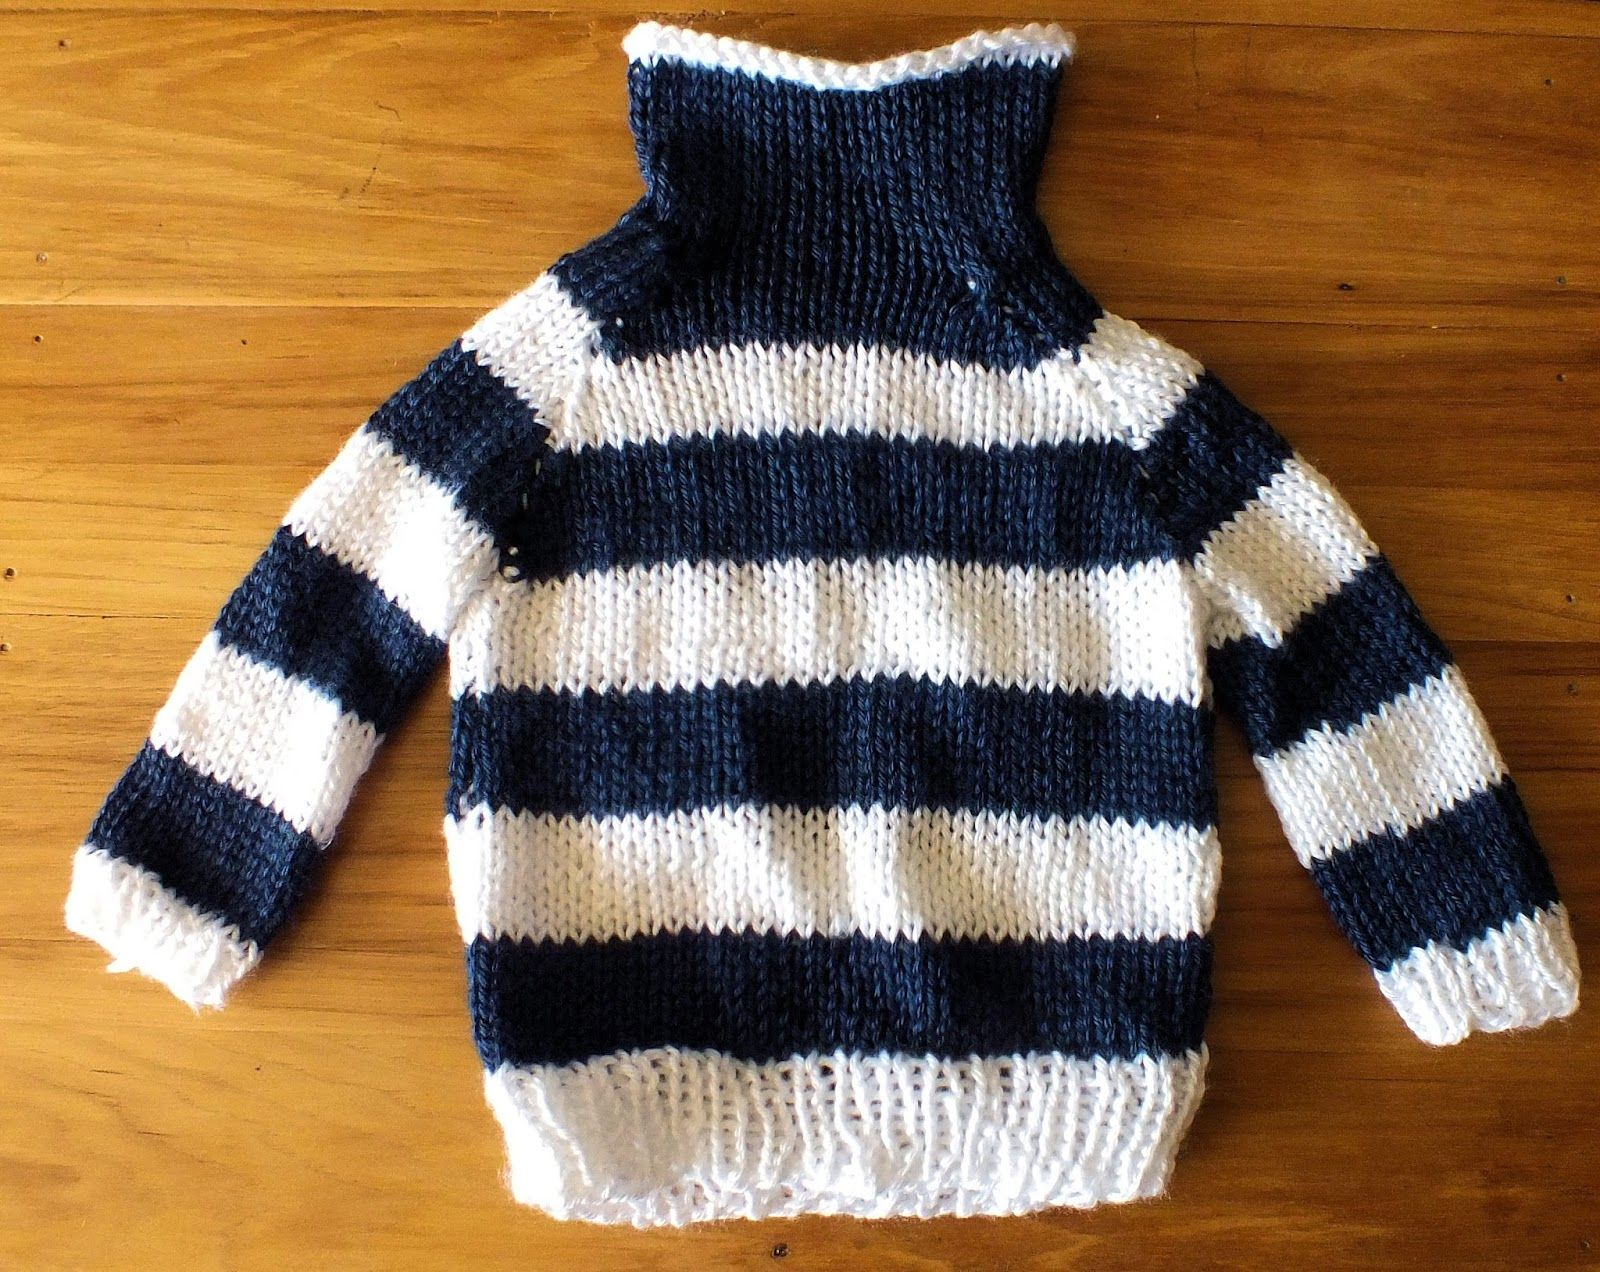 The Loom Muse : How to Loom Knit a Toddler/ Baby Sweater | Loom Knit ...